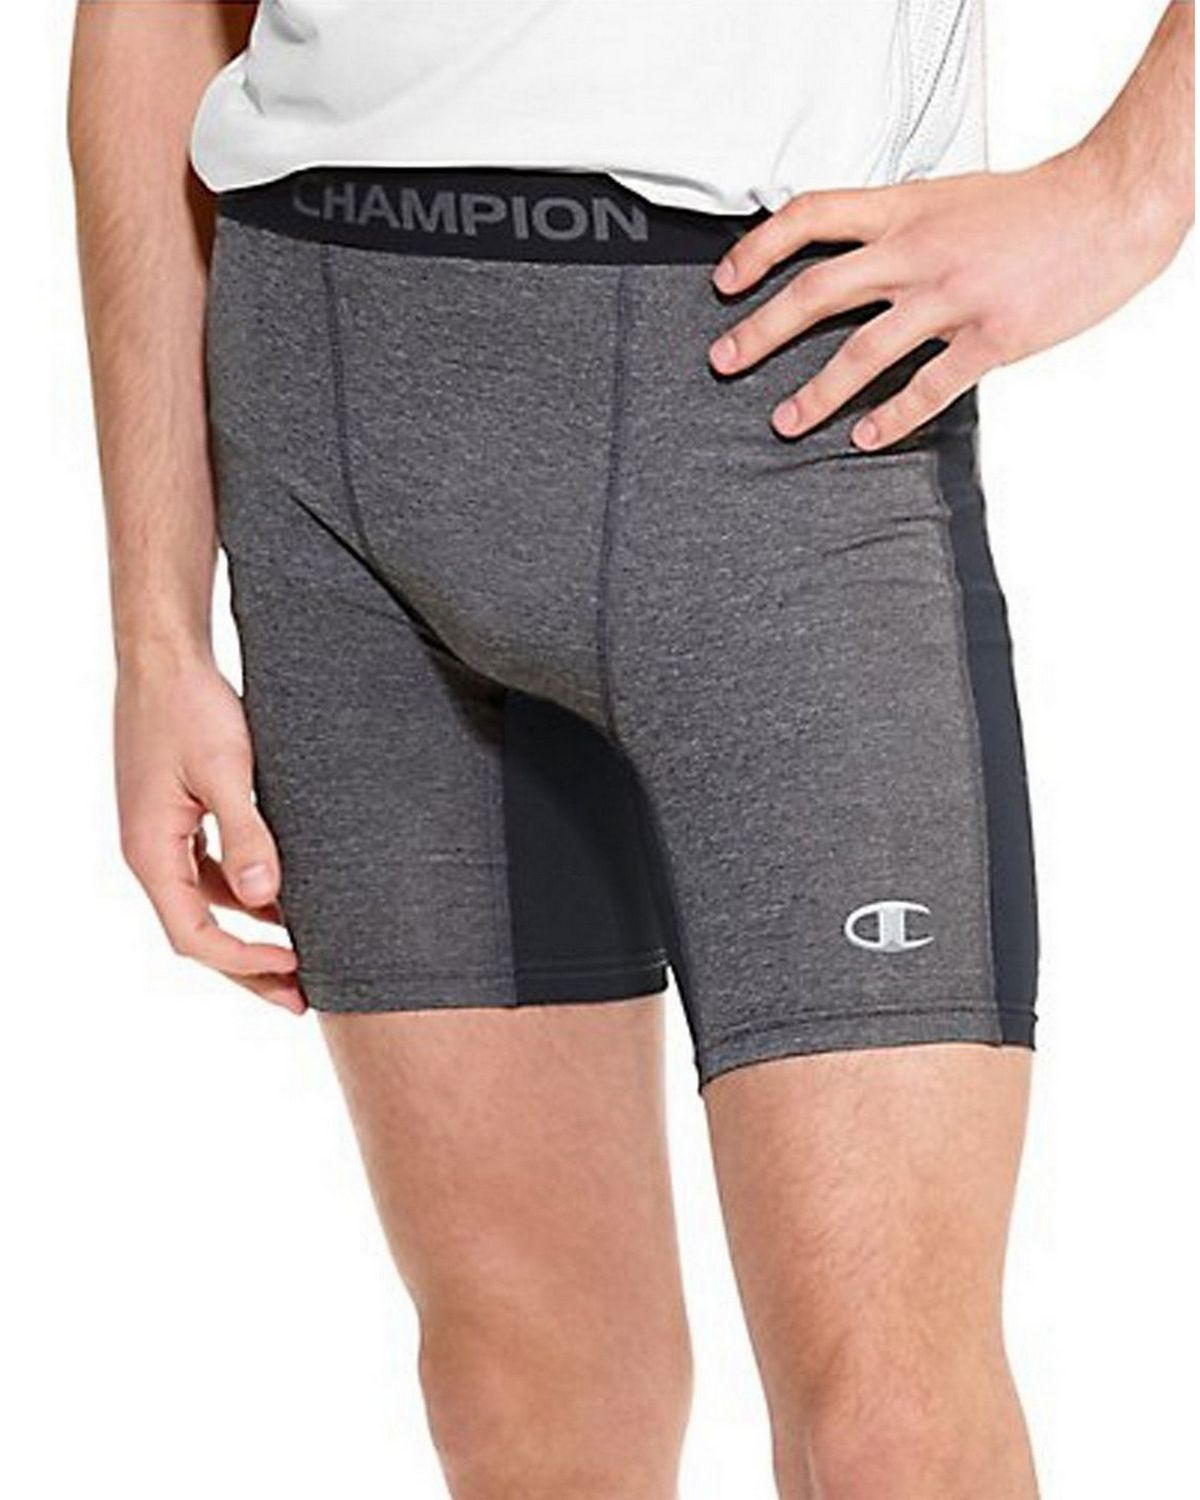 Champion 87294 PowerTrain PowerFlex Solid Compression Shorts - Slate Grey Heather/Black - L 87294